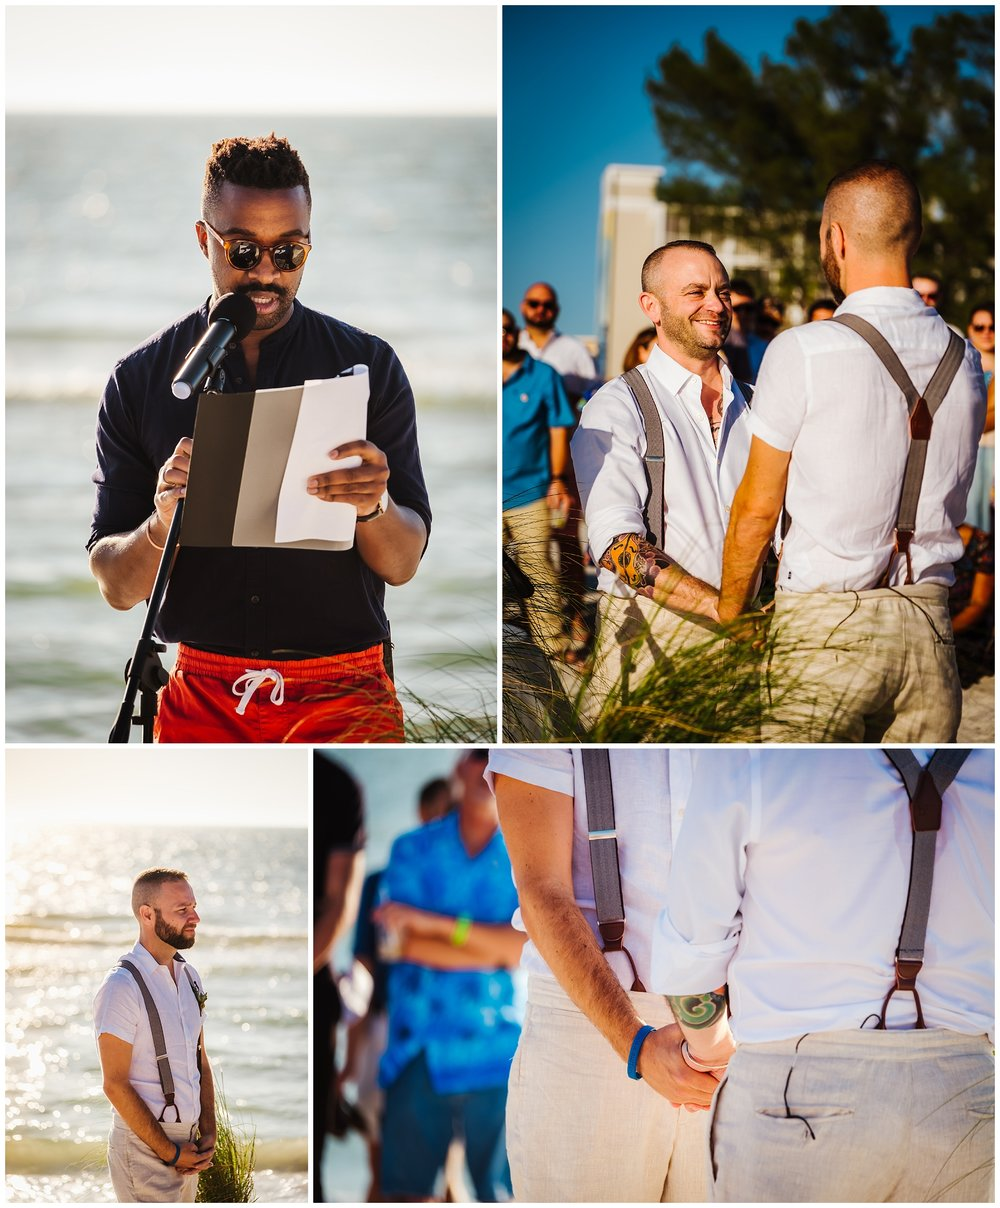 st-pete-same-sex-wedding-photographer-equal-love-gay-drag-queens_0022.jpg